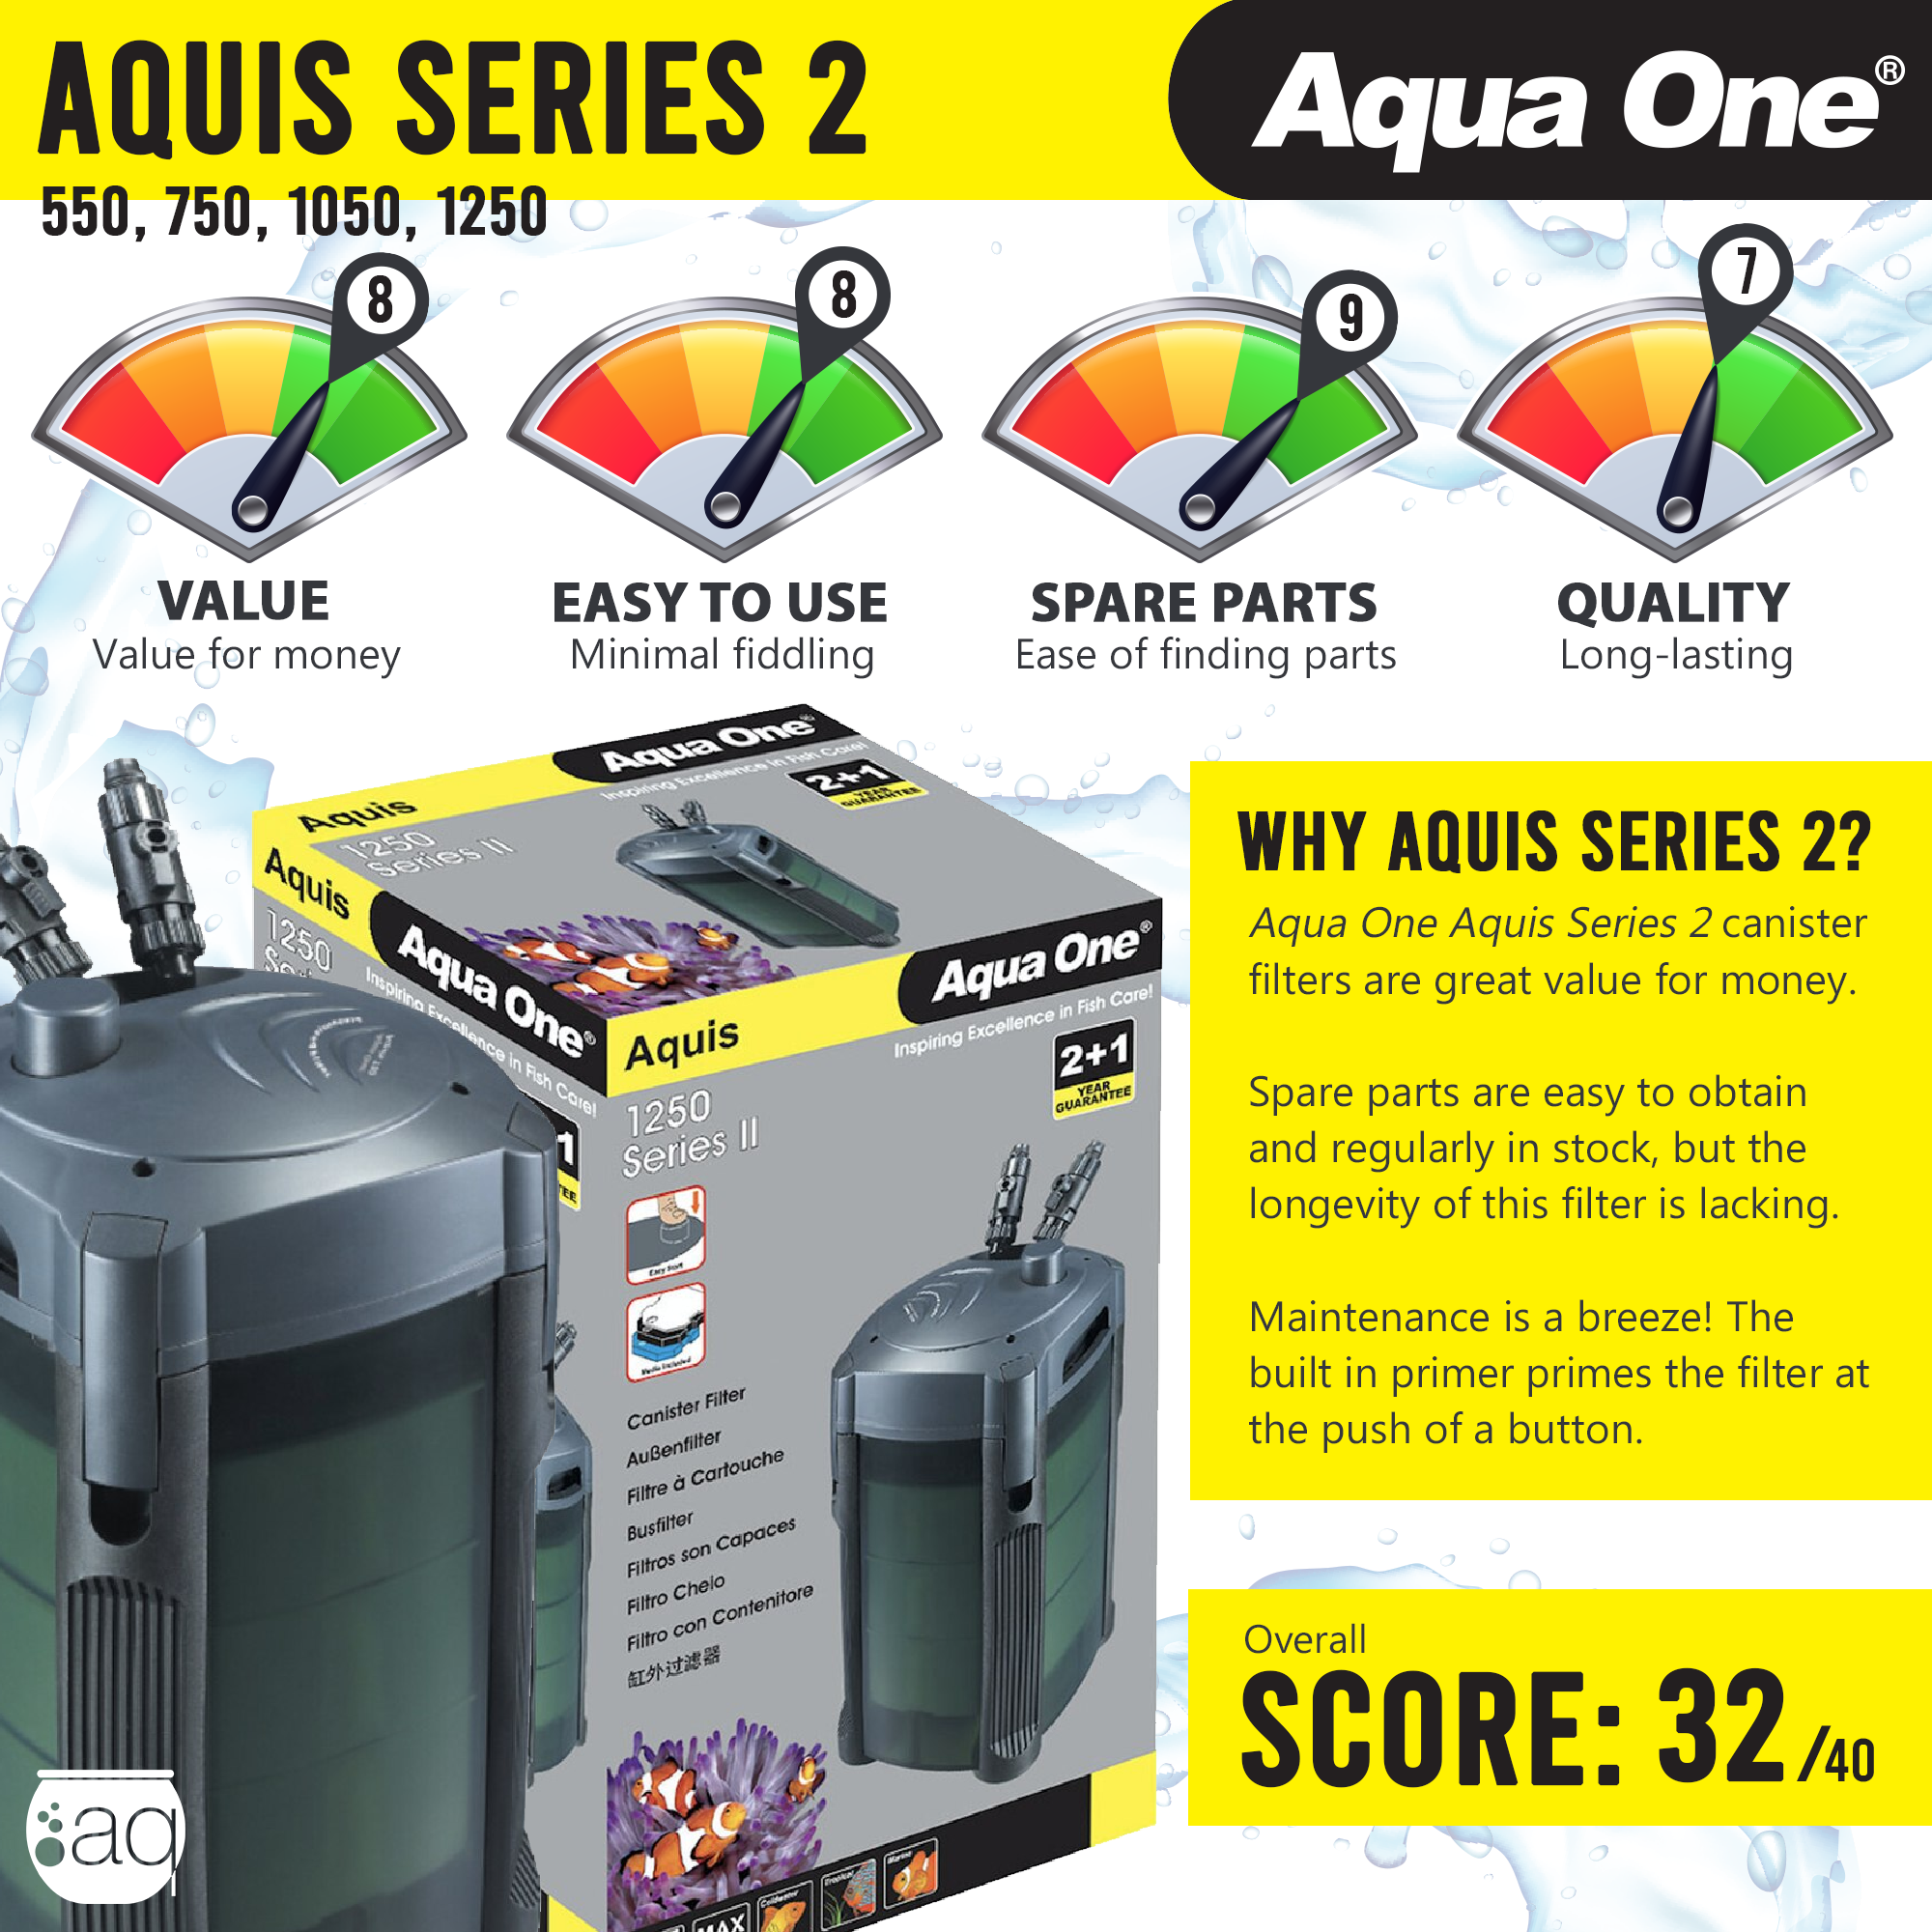 rating-scale-aquis-s2.png